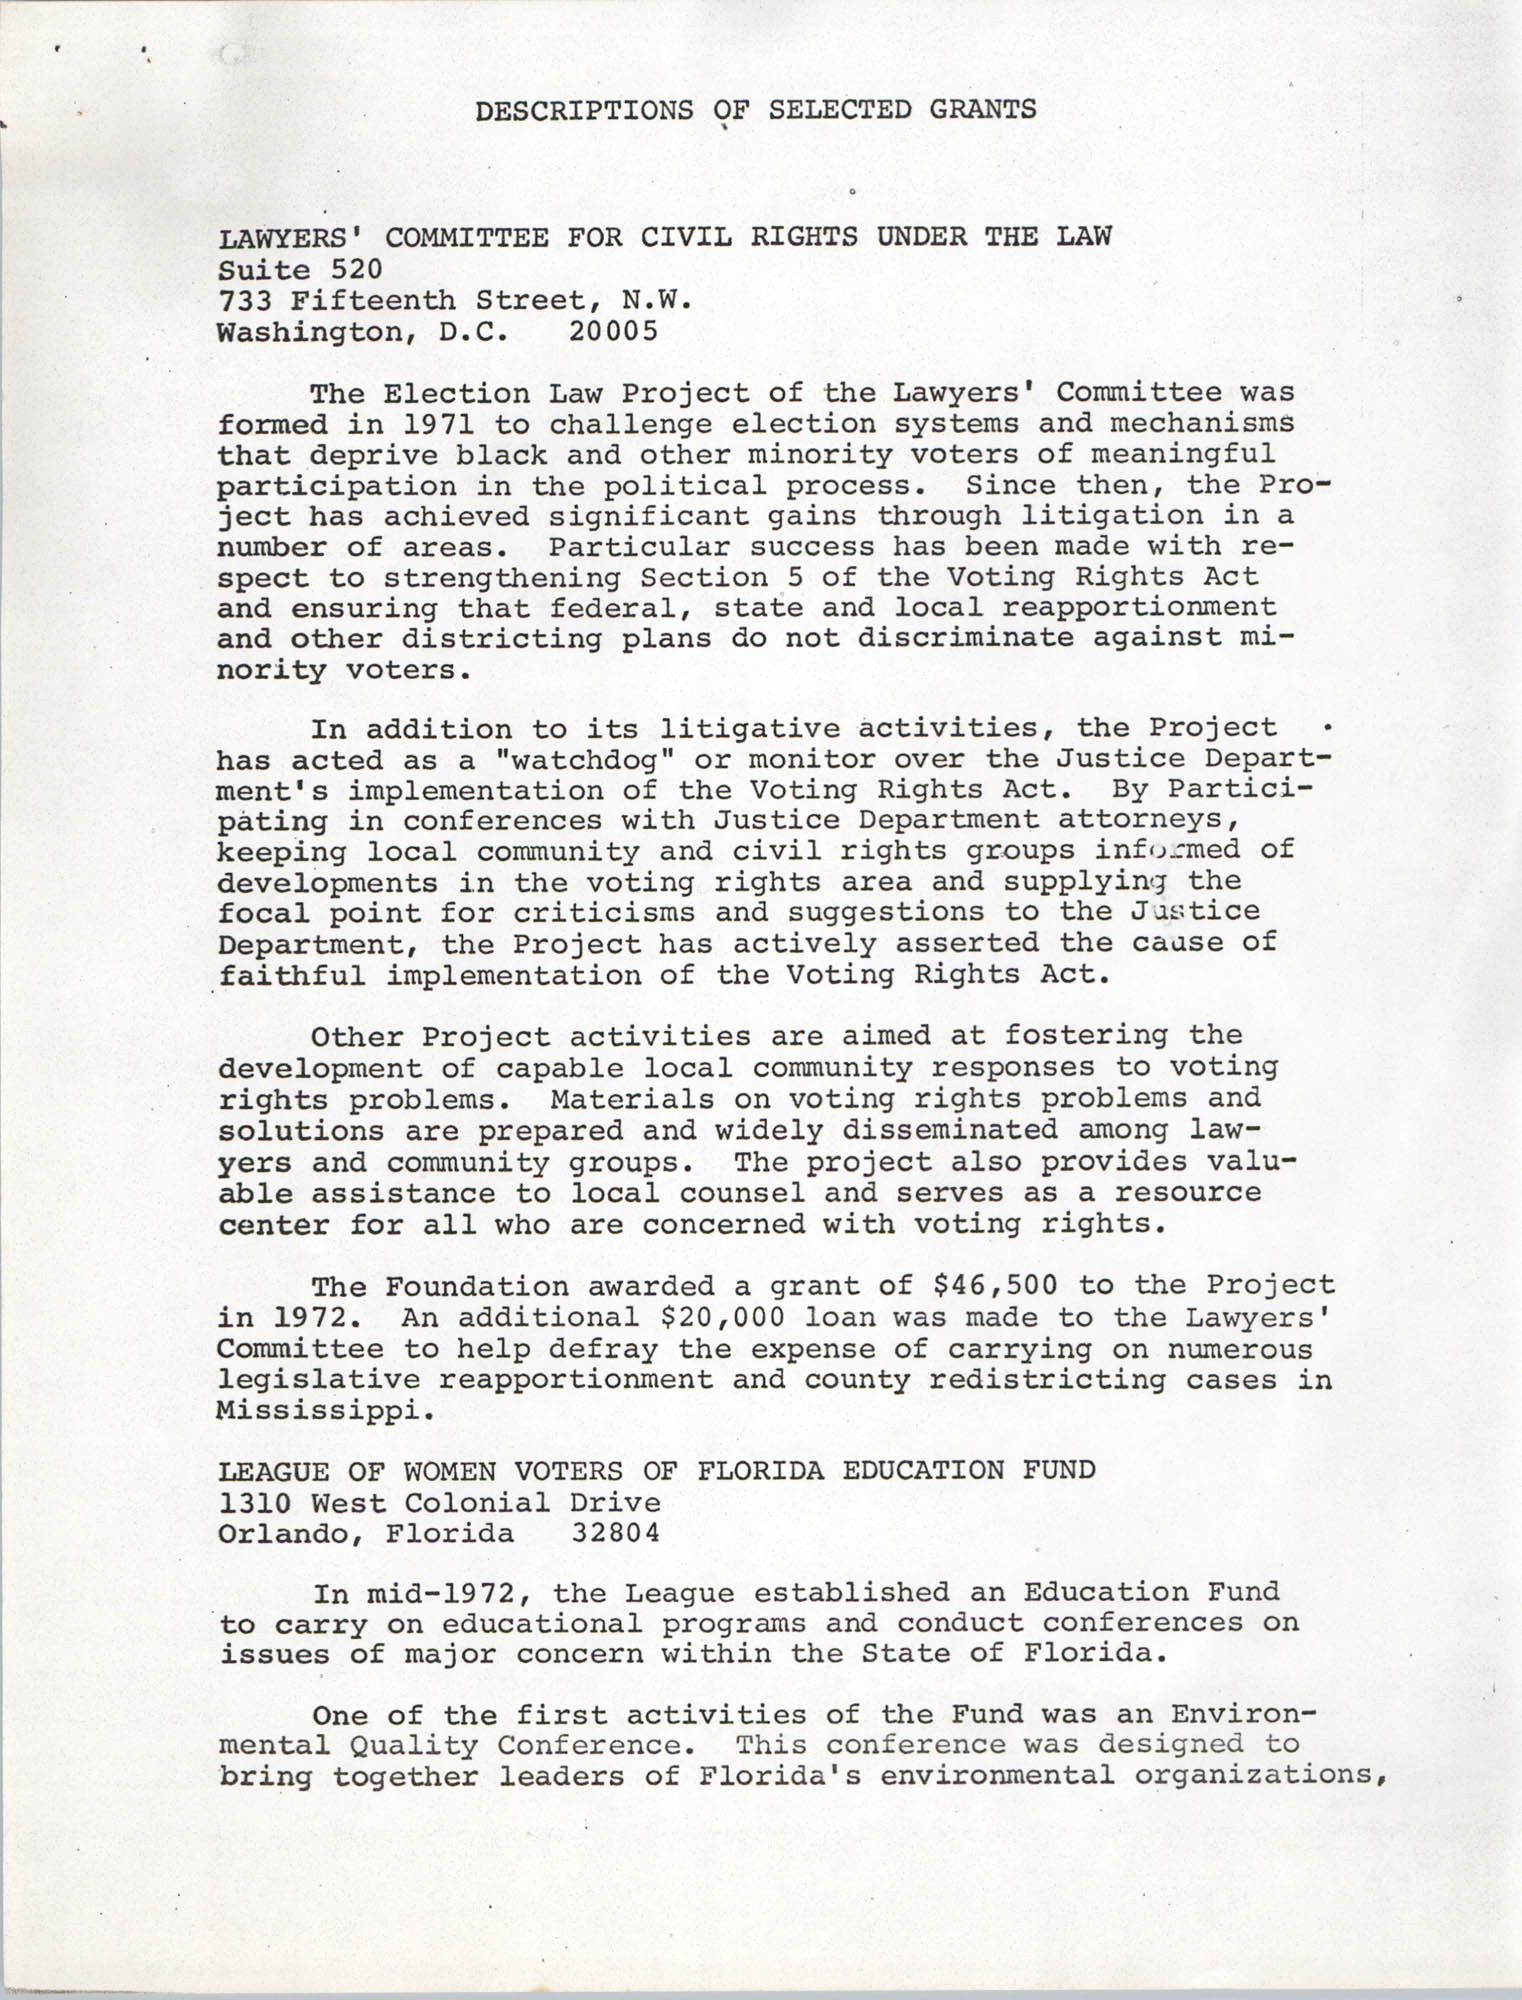 Josephine H. McIntosh Foundation Grant-Making Activities Report for 1972, Selected Grants Page 1